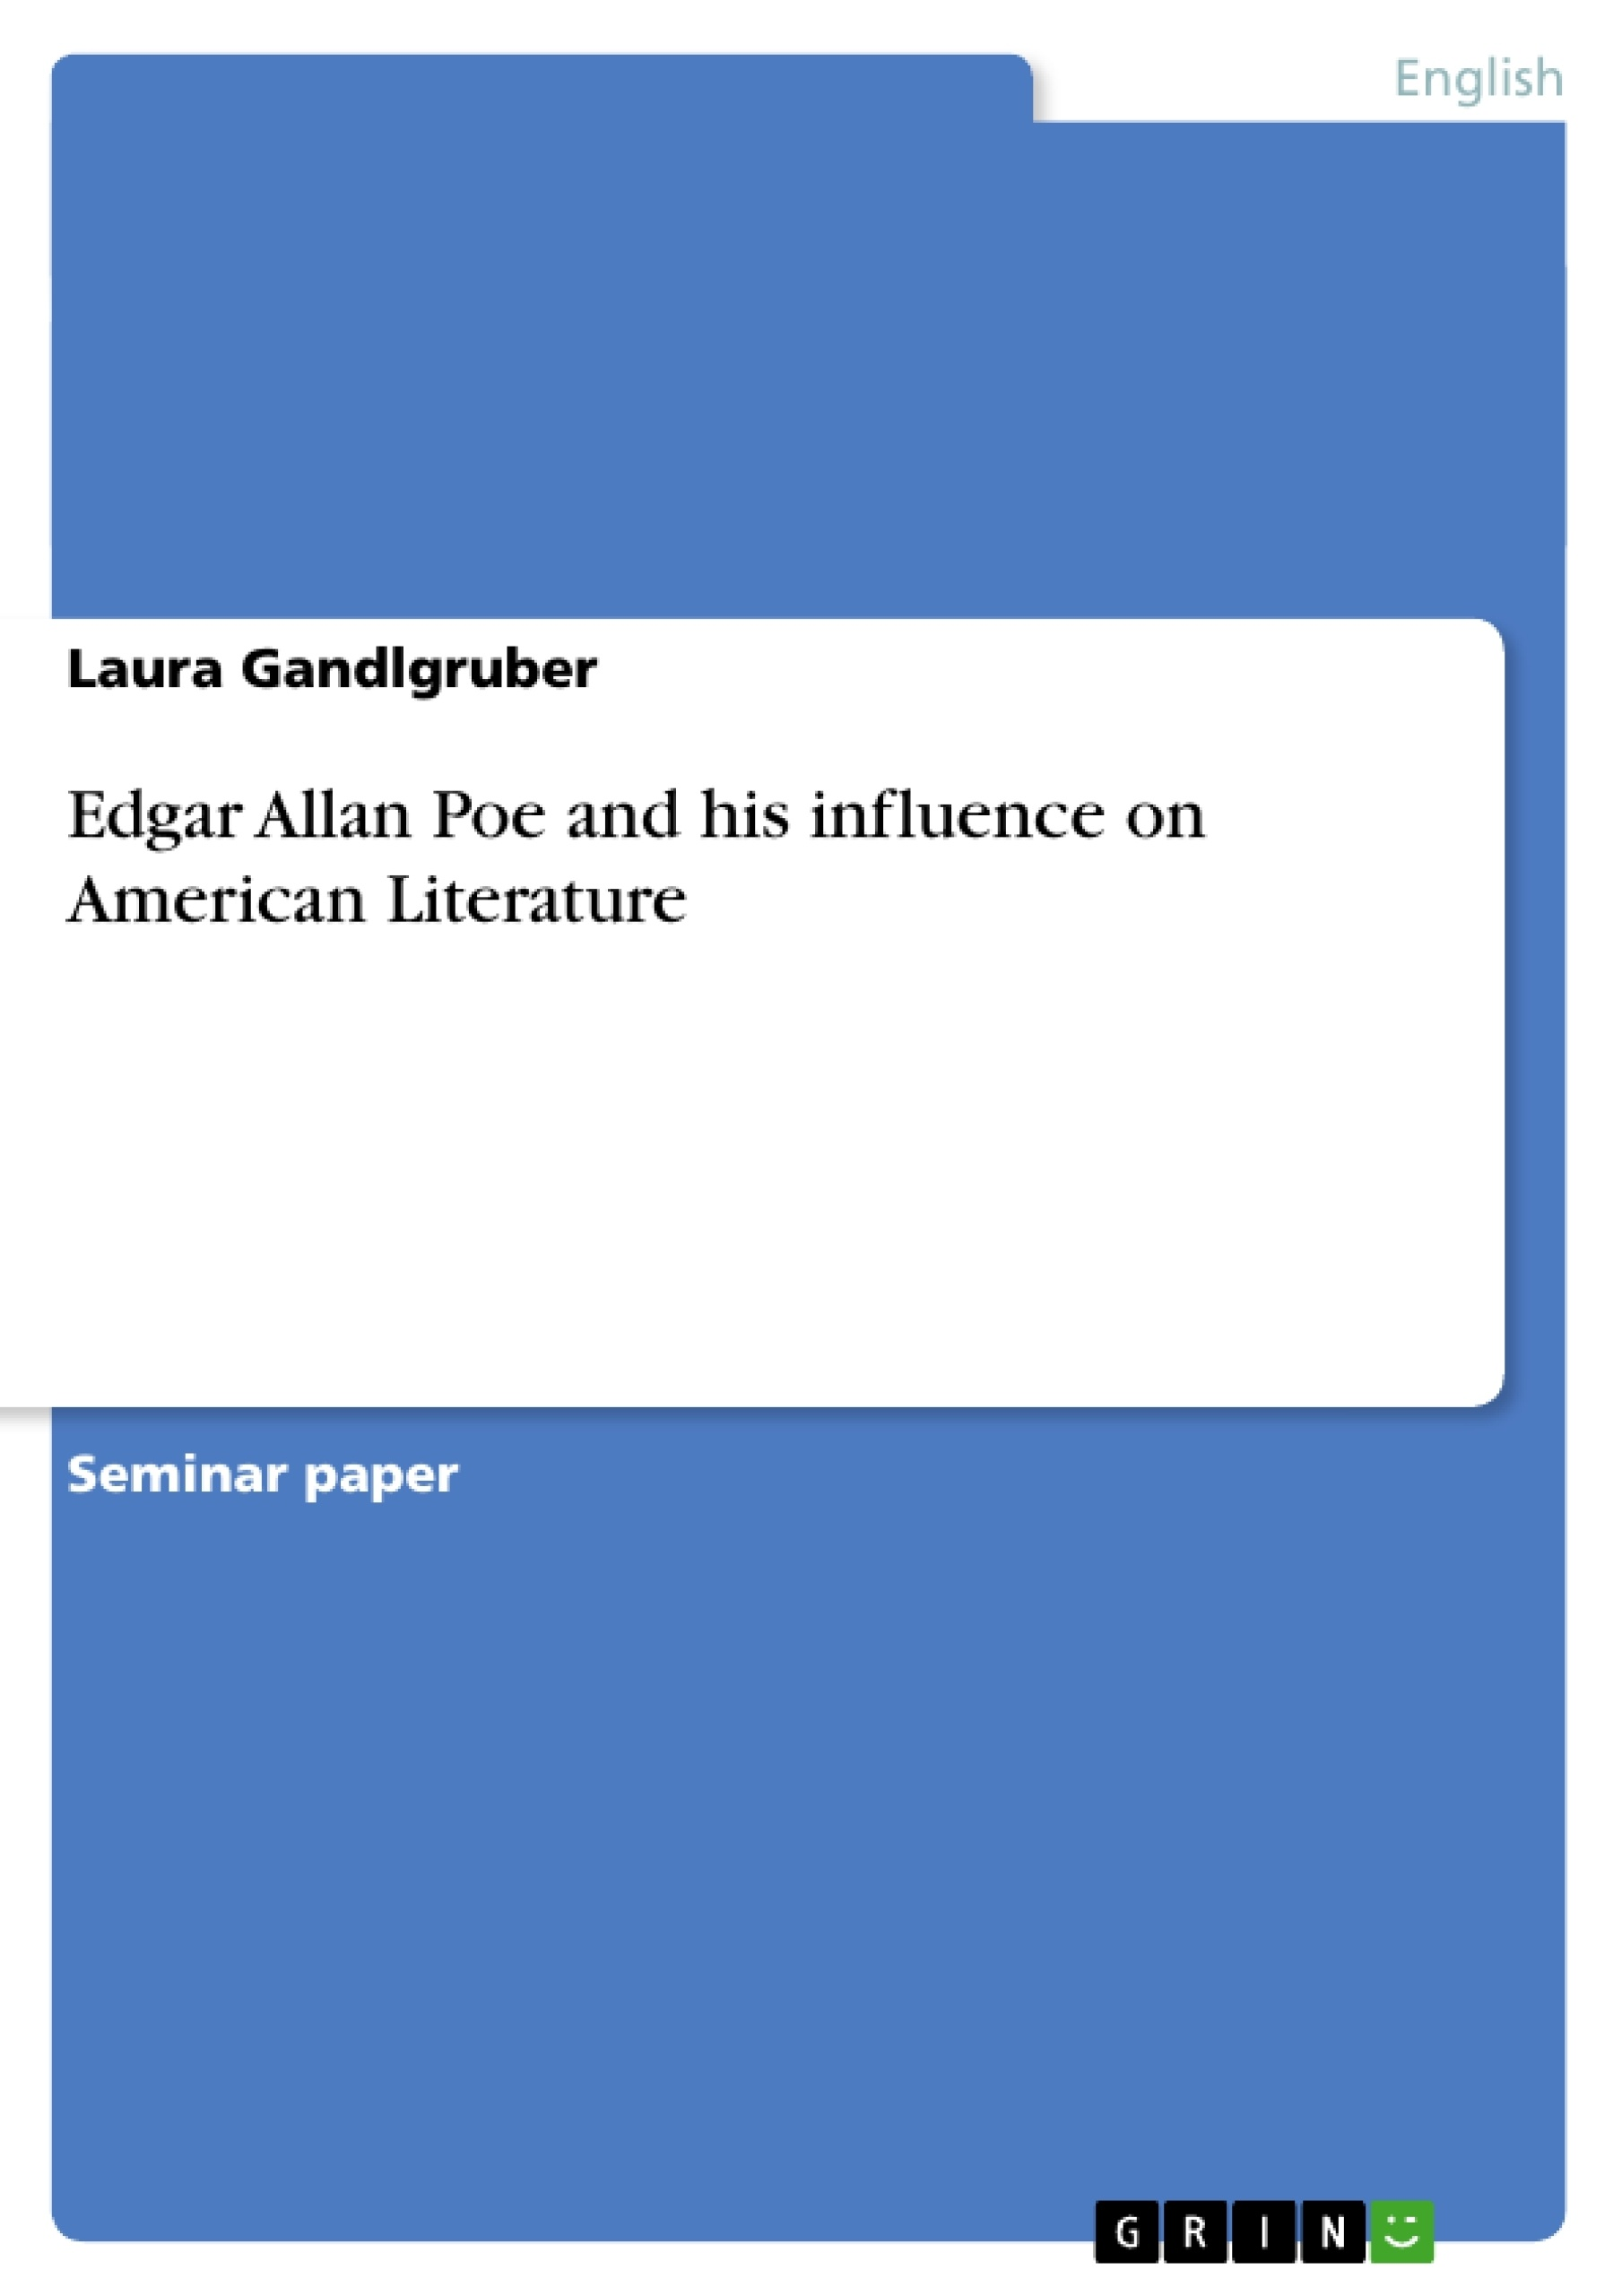 Title: Edgar Allan Poe and his influence on American Literature